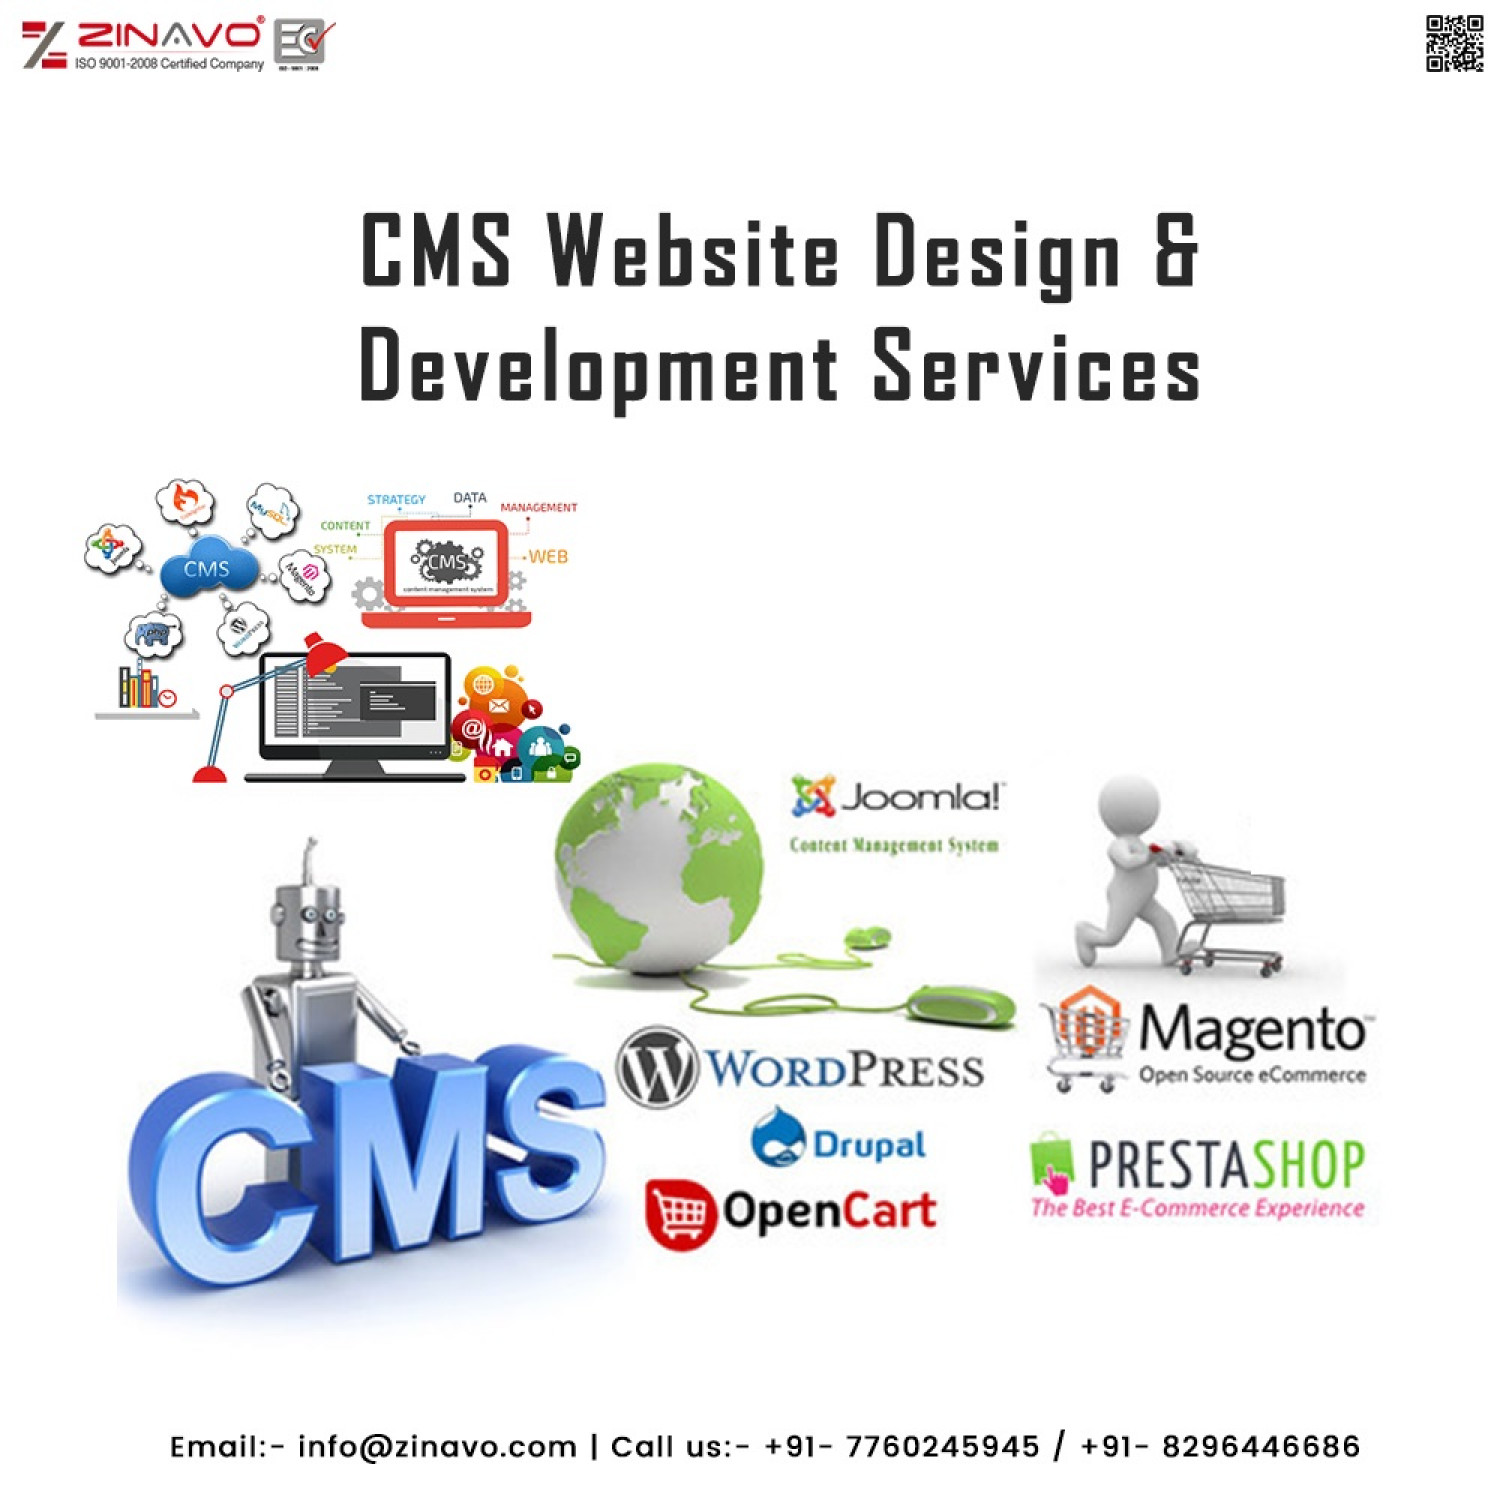 CMS Website Design & Development Services Infographic